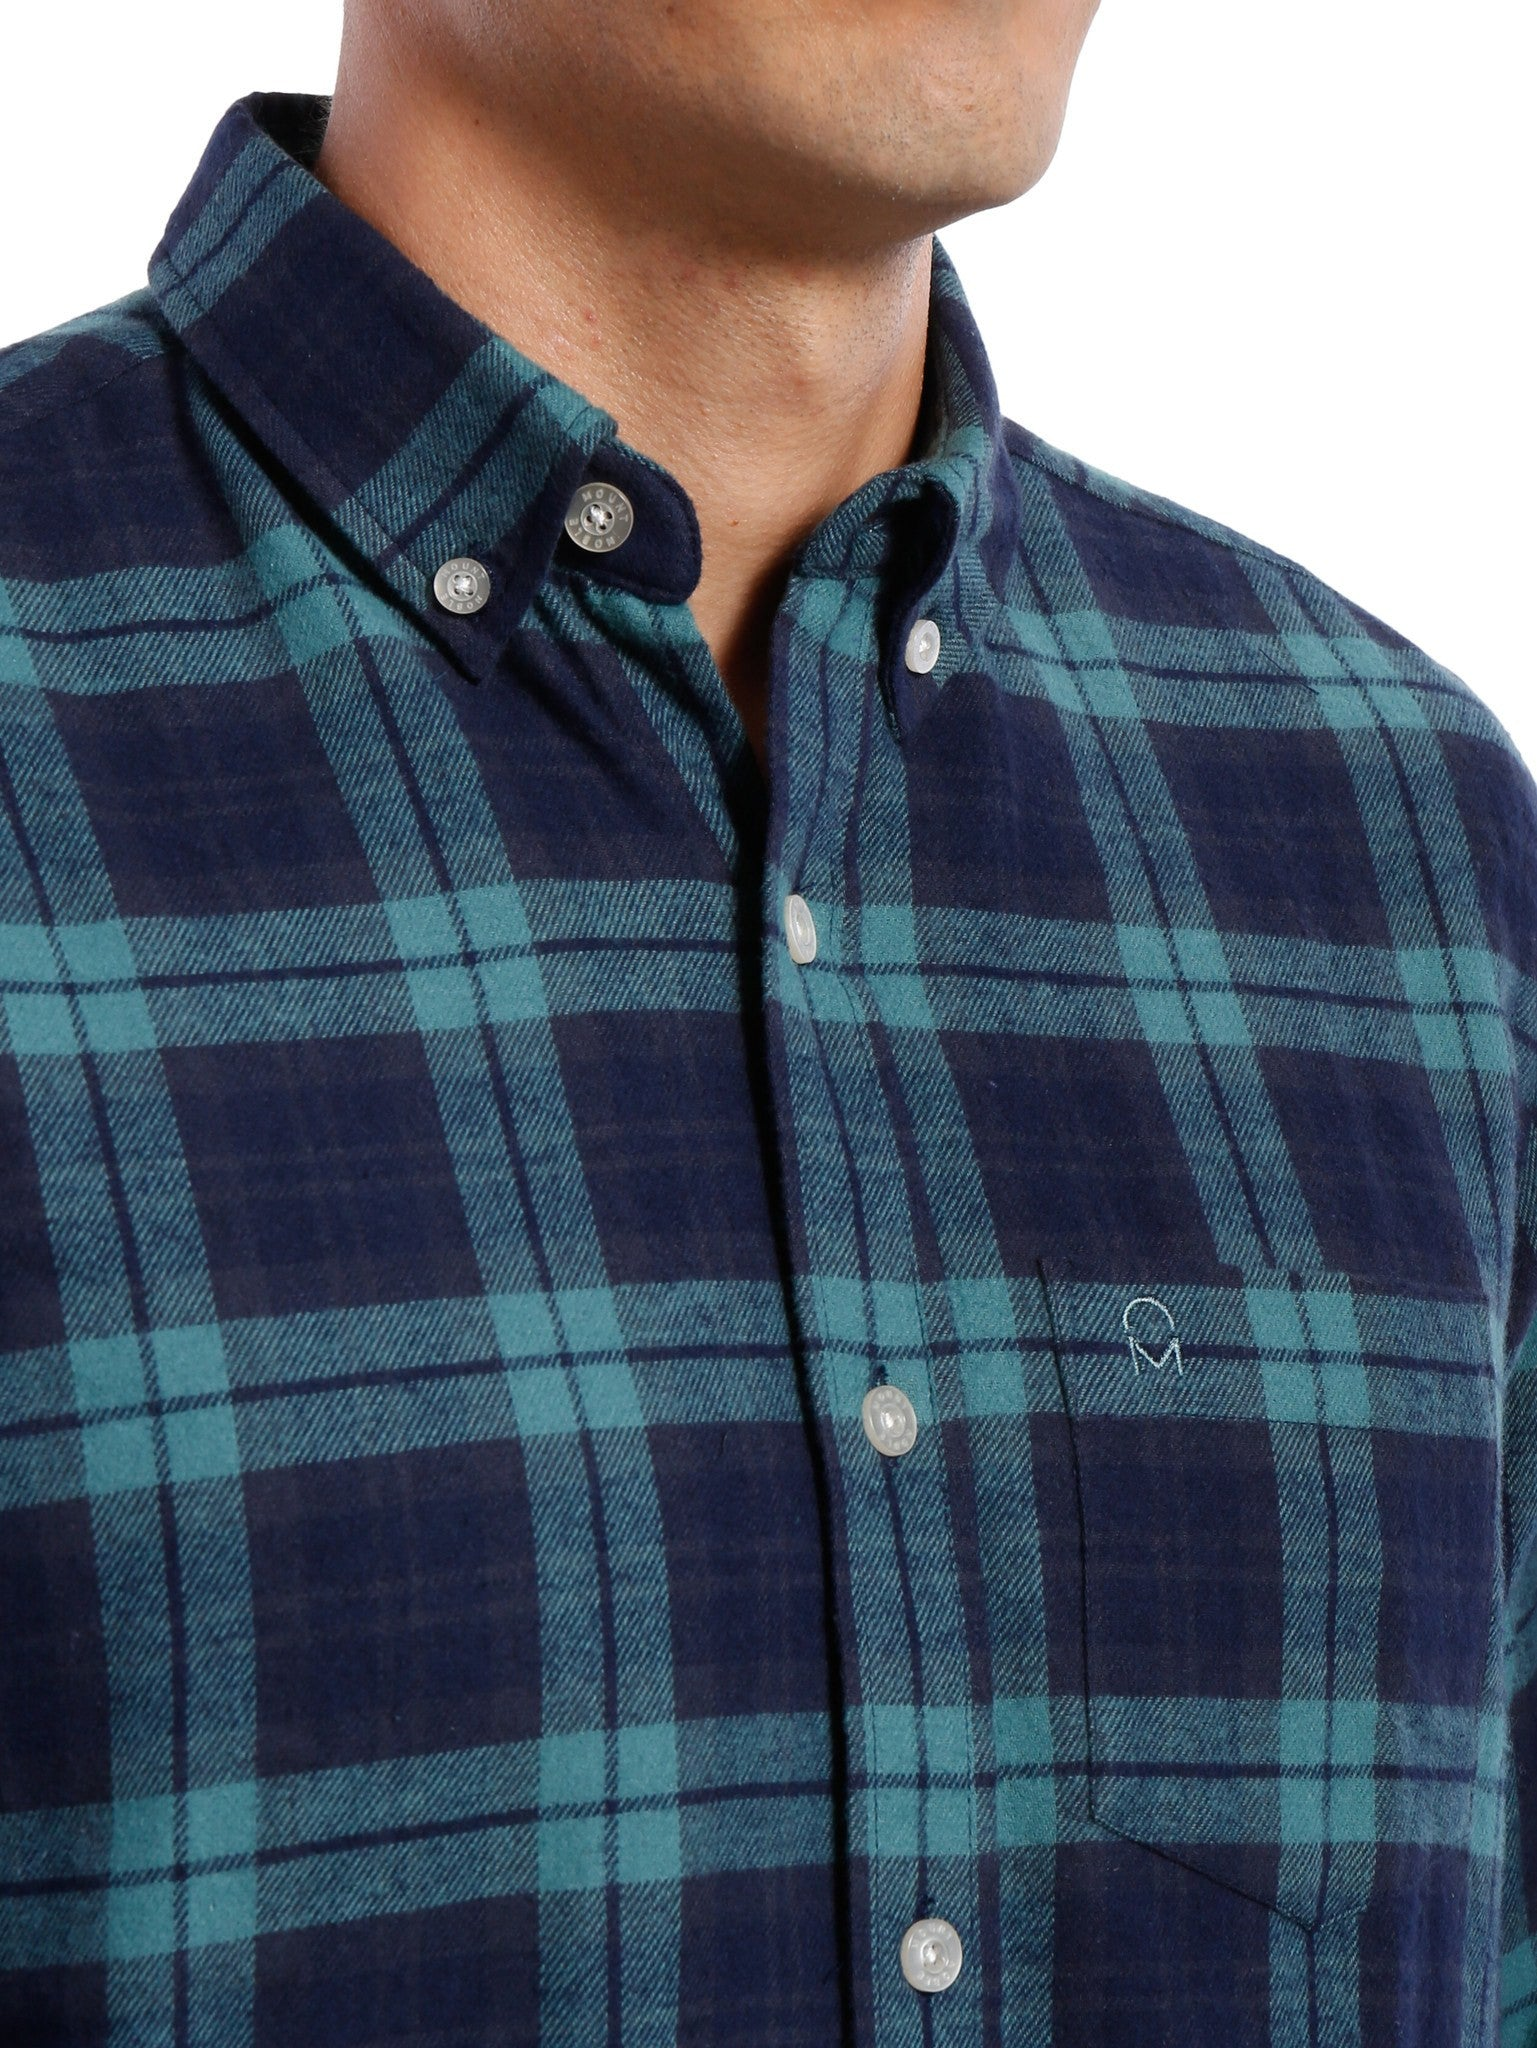 Navy-Green Plaid